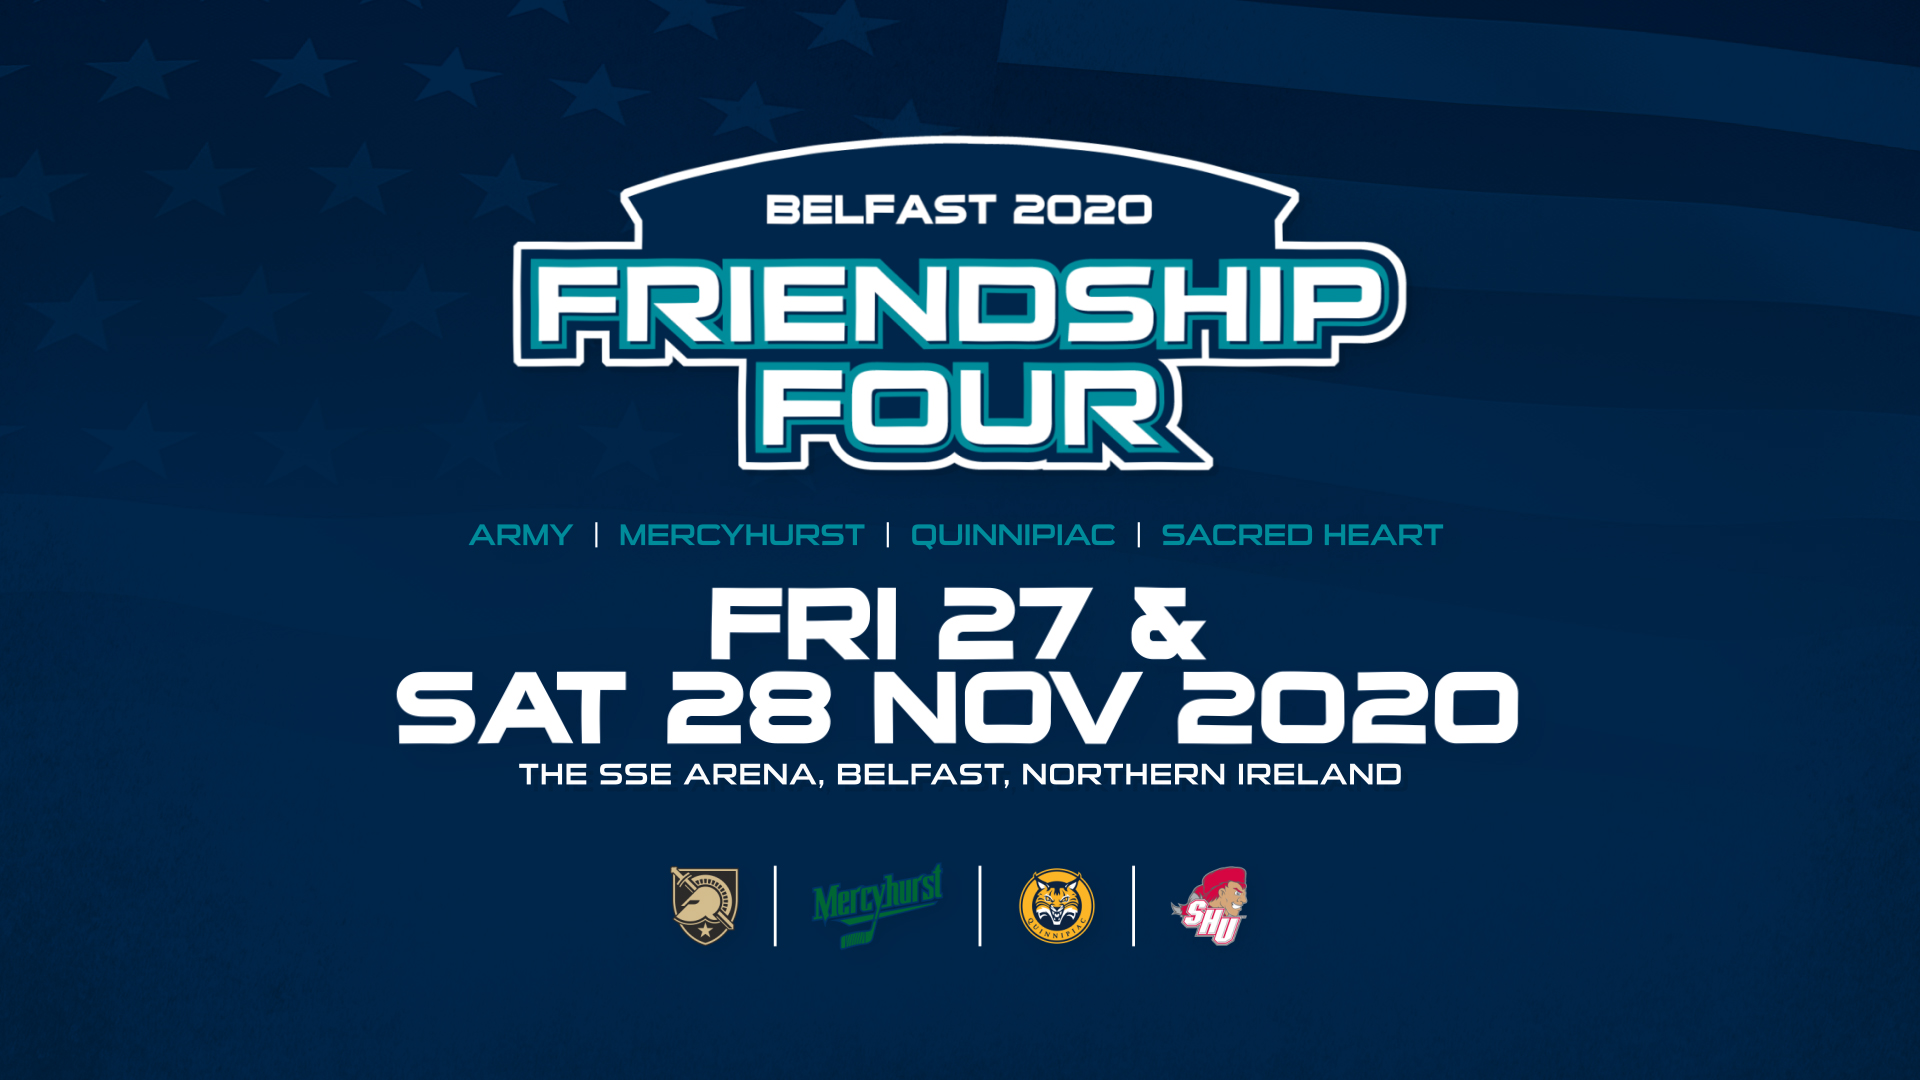 The Friendship Four Hockey Tournament Returns to The SSE Arena, Belfast